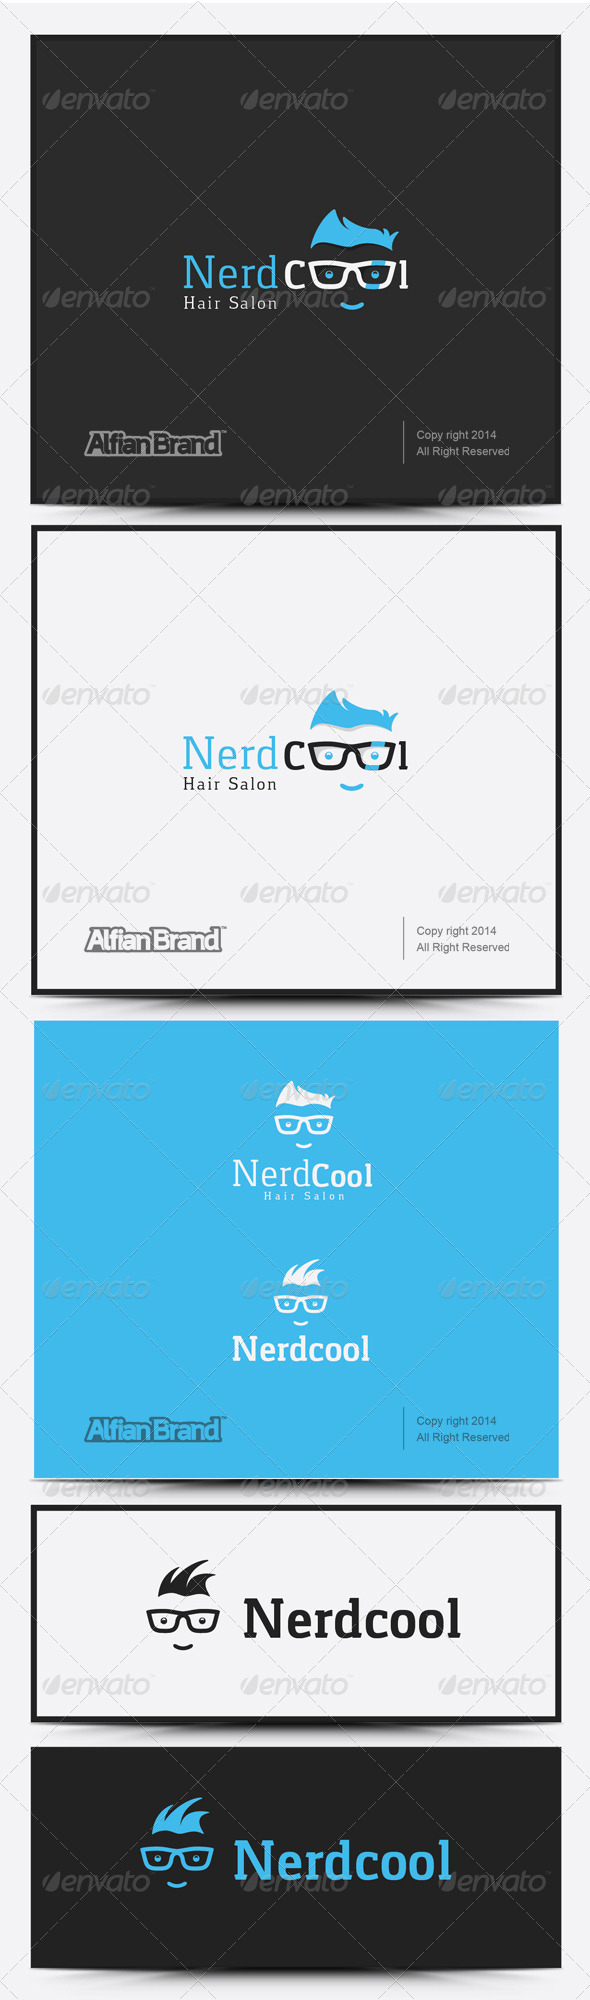 GraphicRiver Nerd Cool Logo 8258479